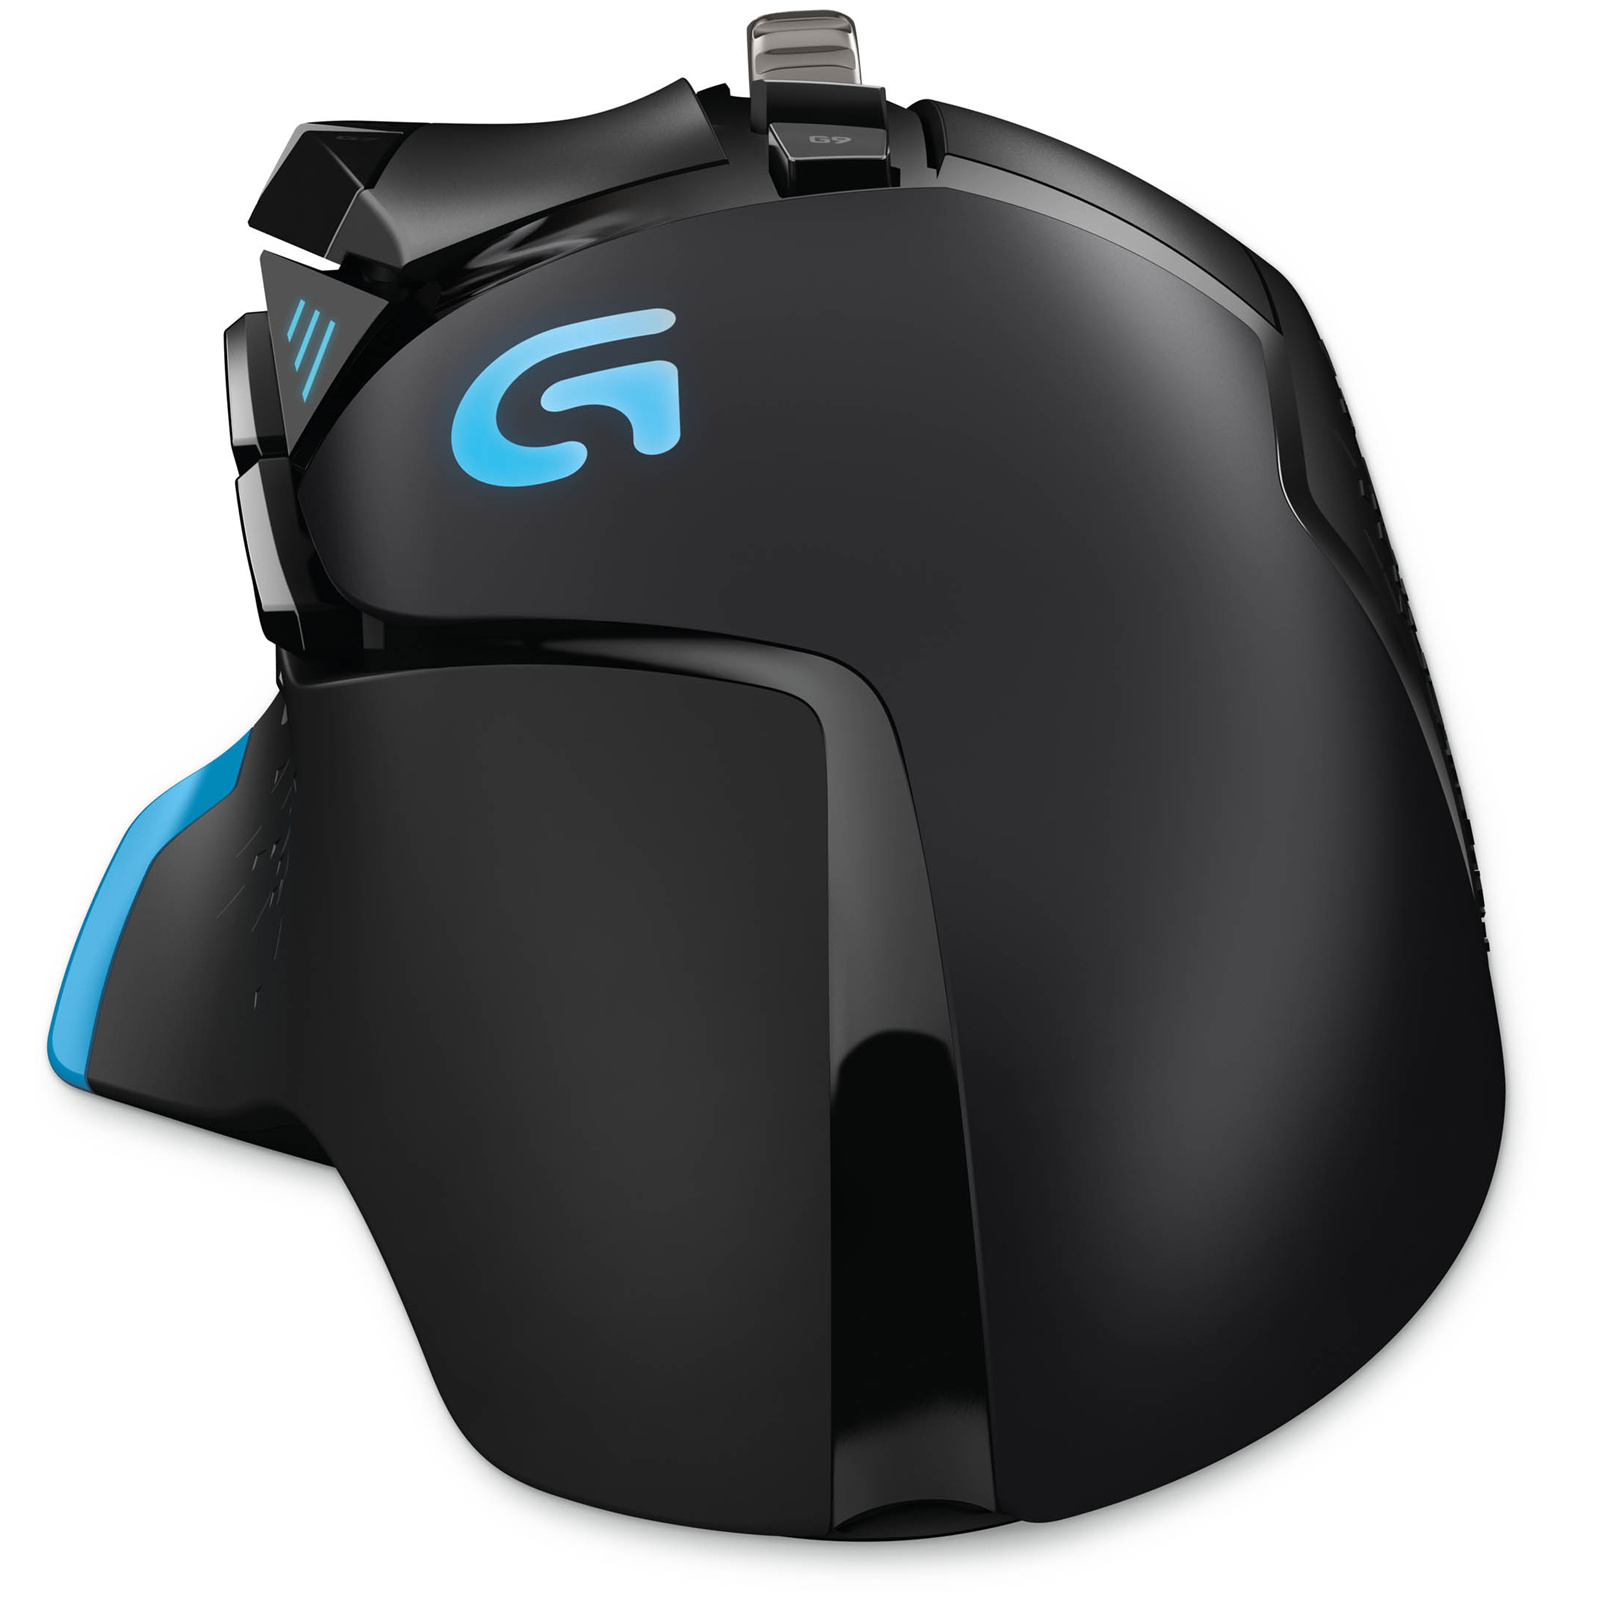 Buy the Logitech G502 Hero High Performance Wired RGB Gaming